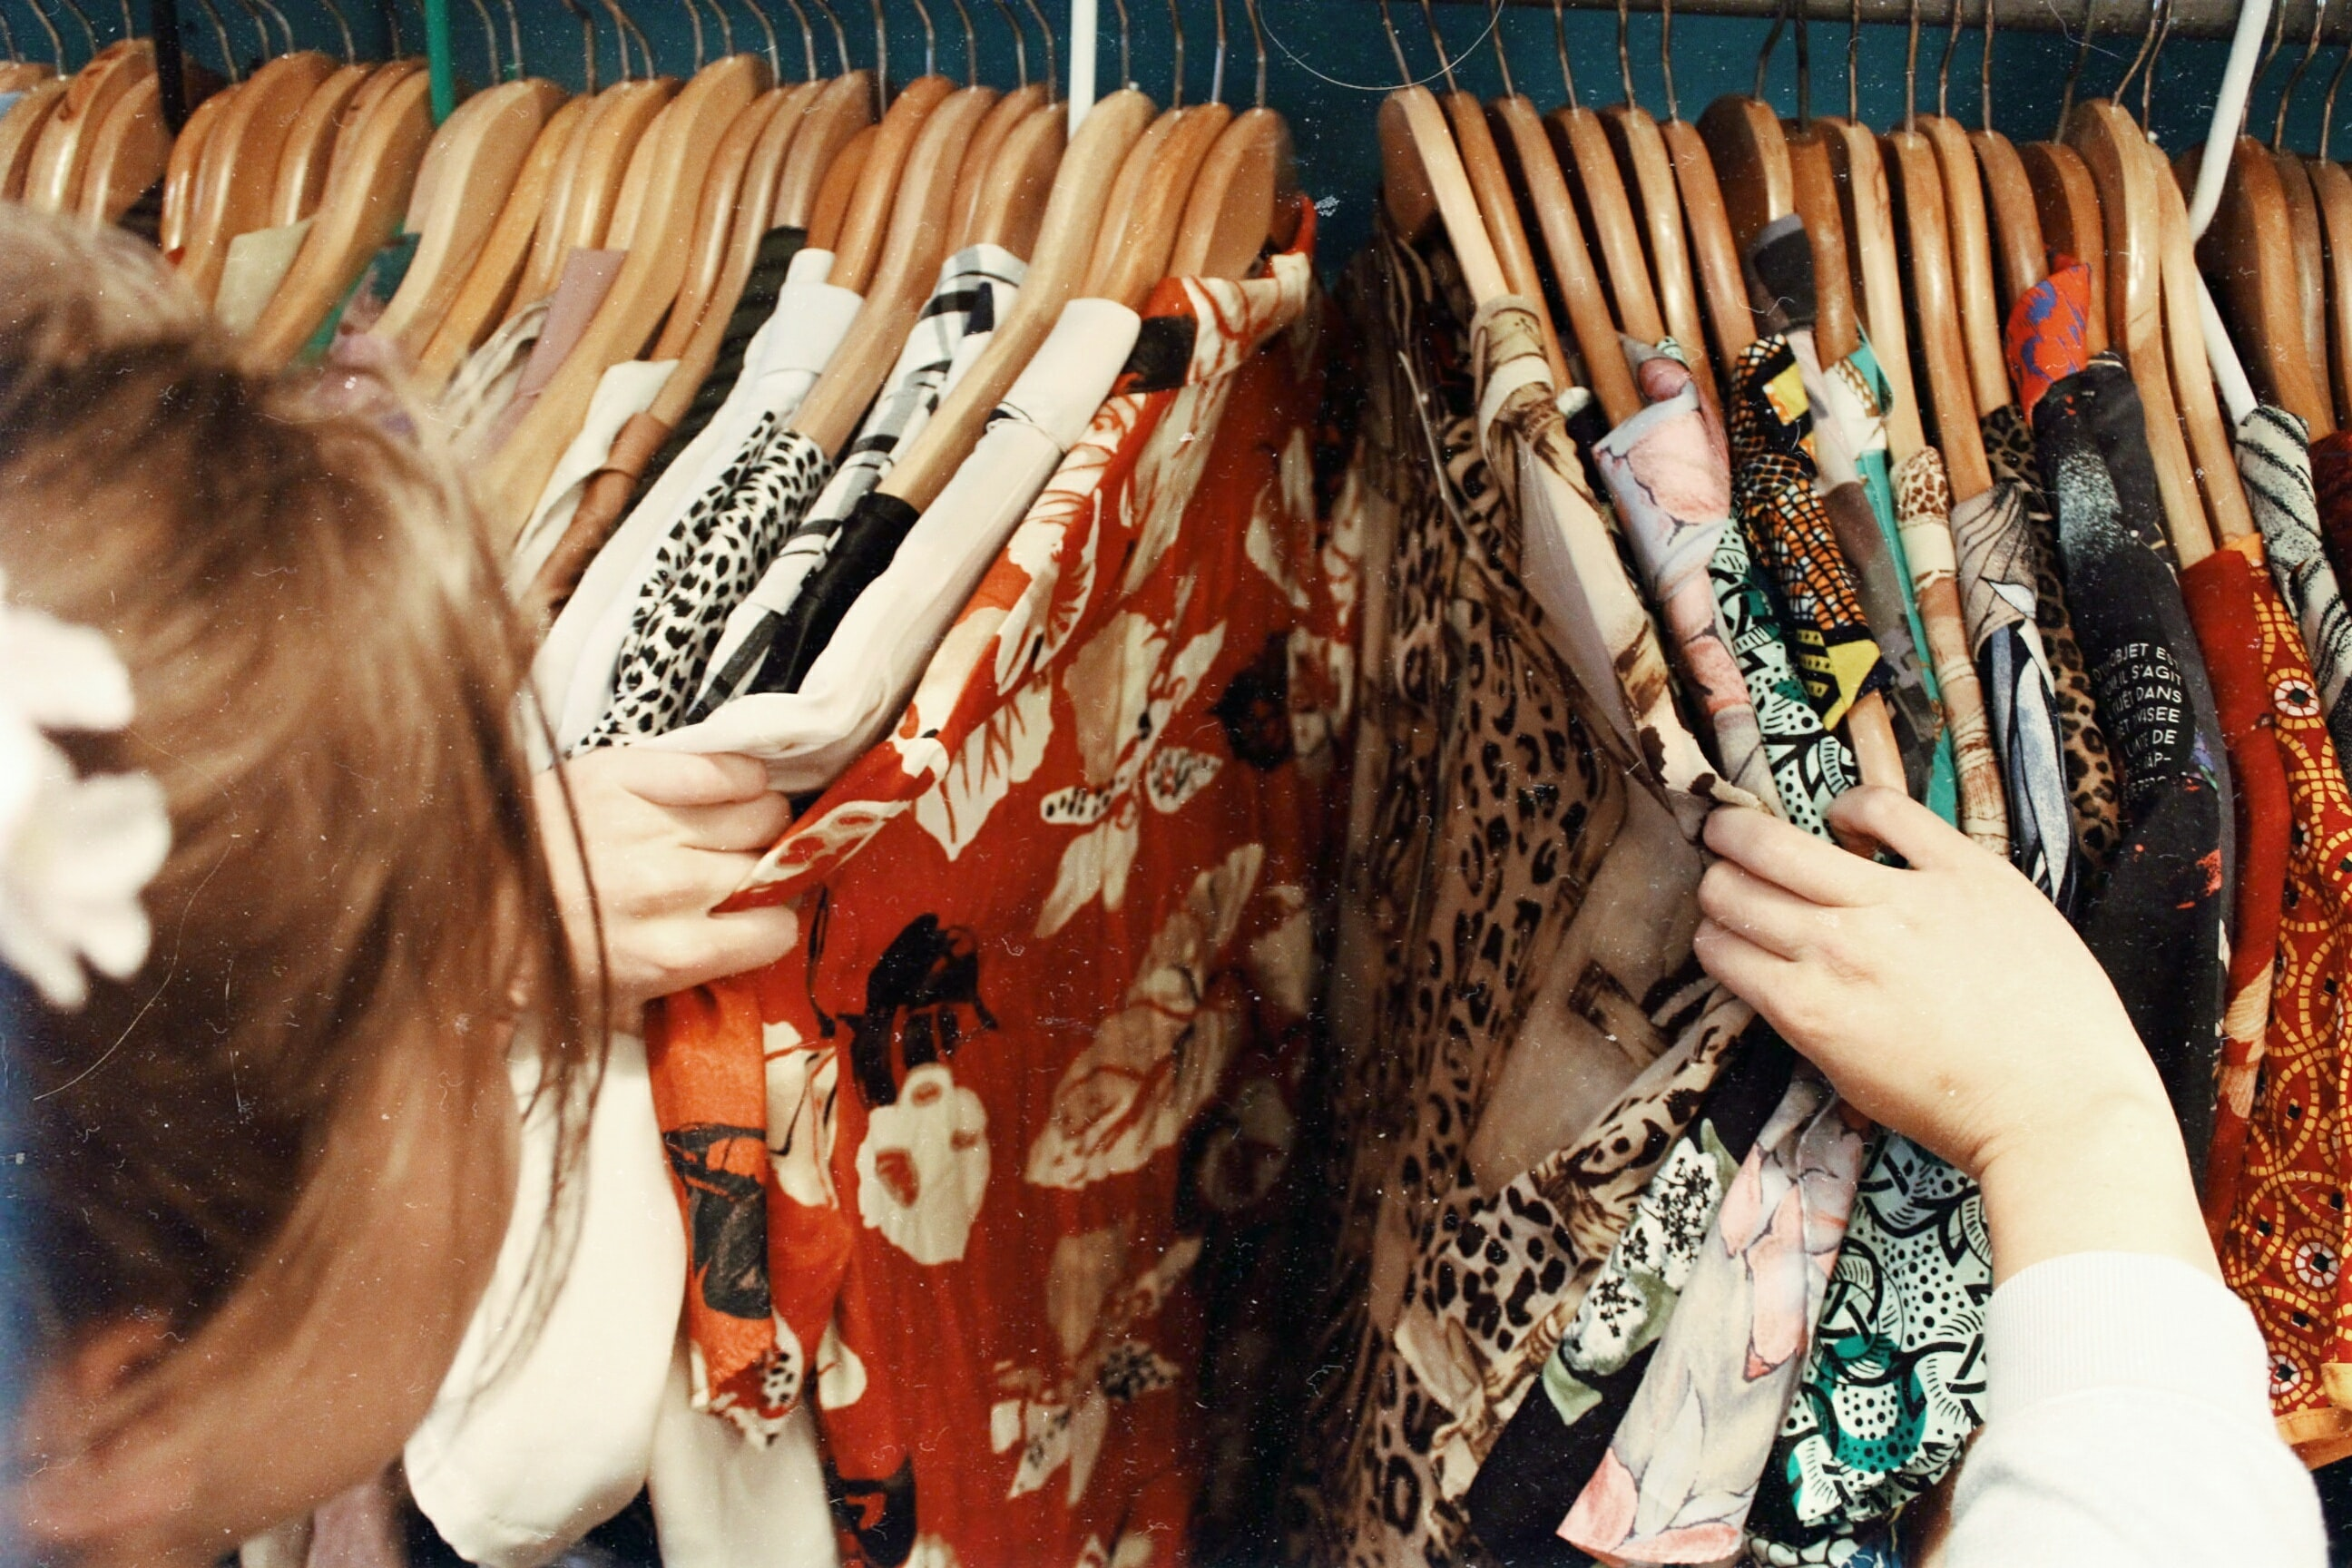 Close up of woman leafing through dresses on a clothes rack